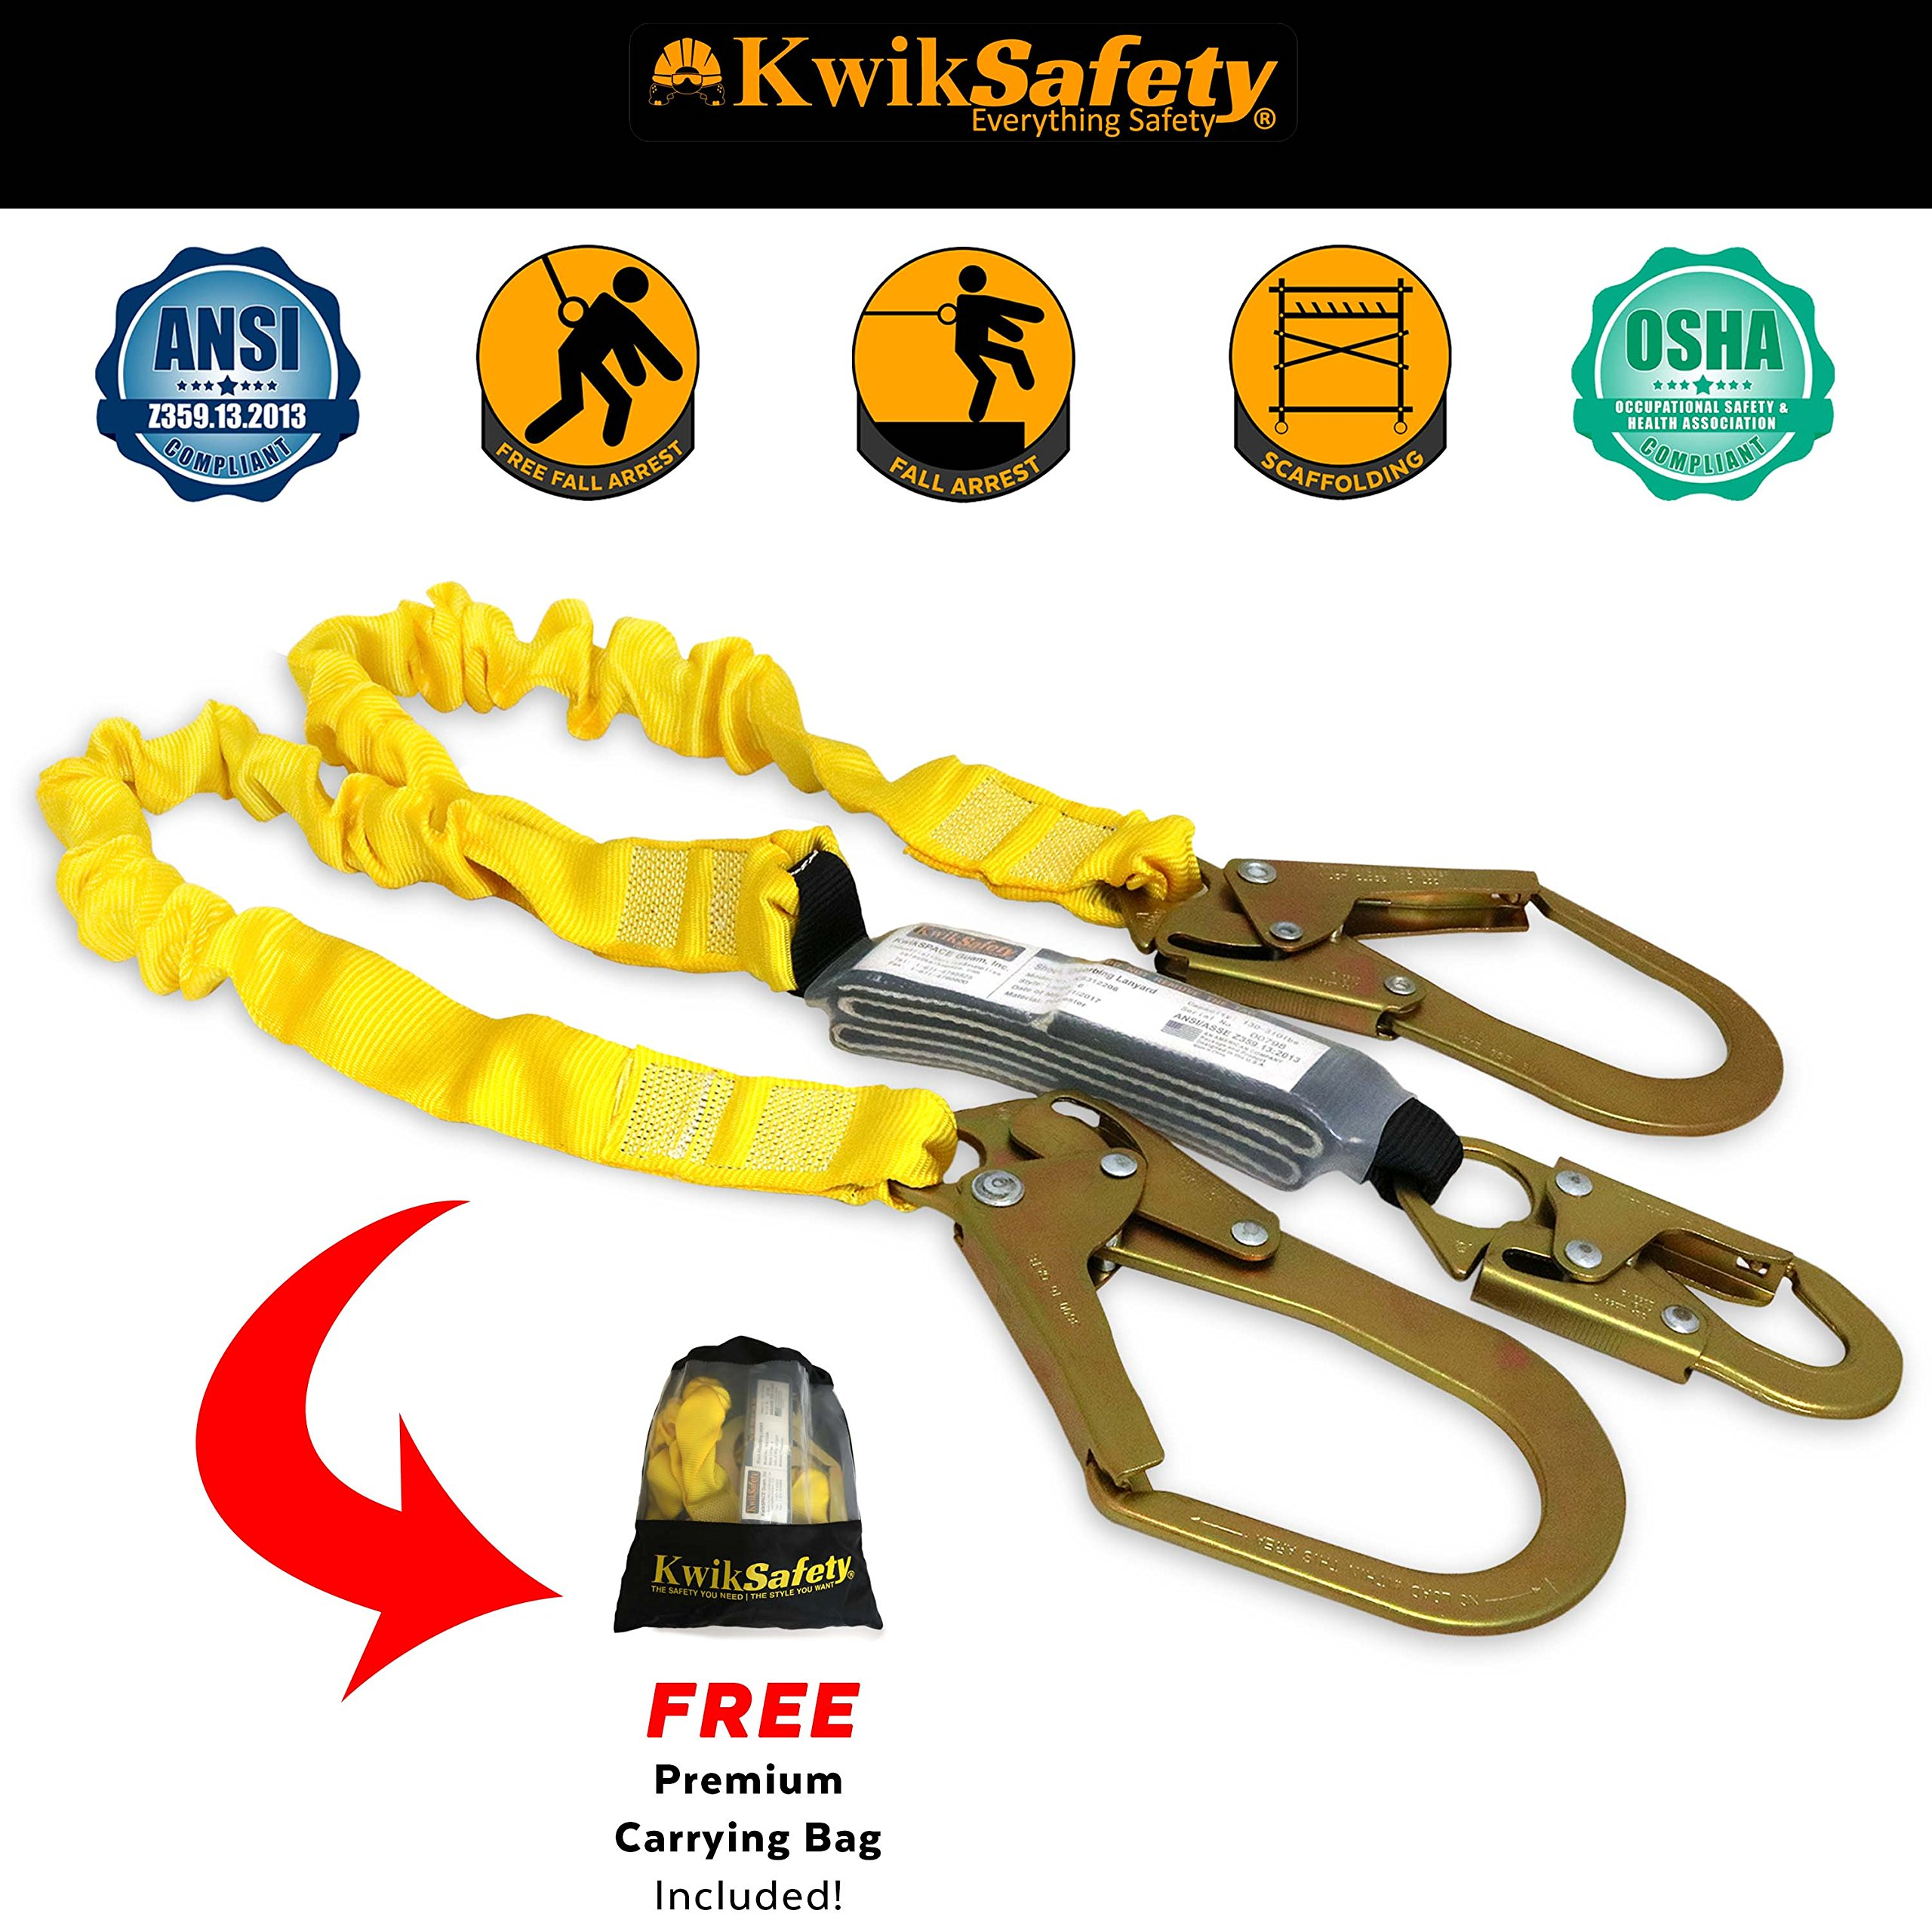 KwikSafety PYTHON   Double Leg 6ft Tubular Stretch Safety Lanyard   OSHA Approved ANSI Compliant Fall Protection   EXTERNAL Shock Absorber   Construction Arborist Roofing   Snap & Rebar Hook Connector by KwikSafety (Image #3)